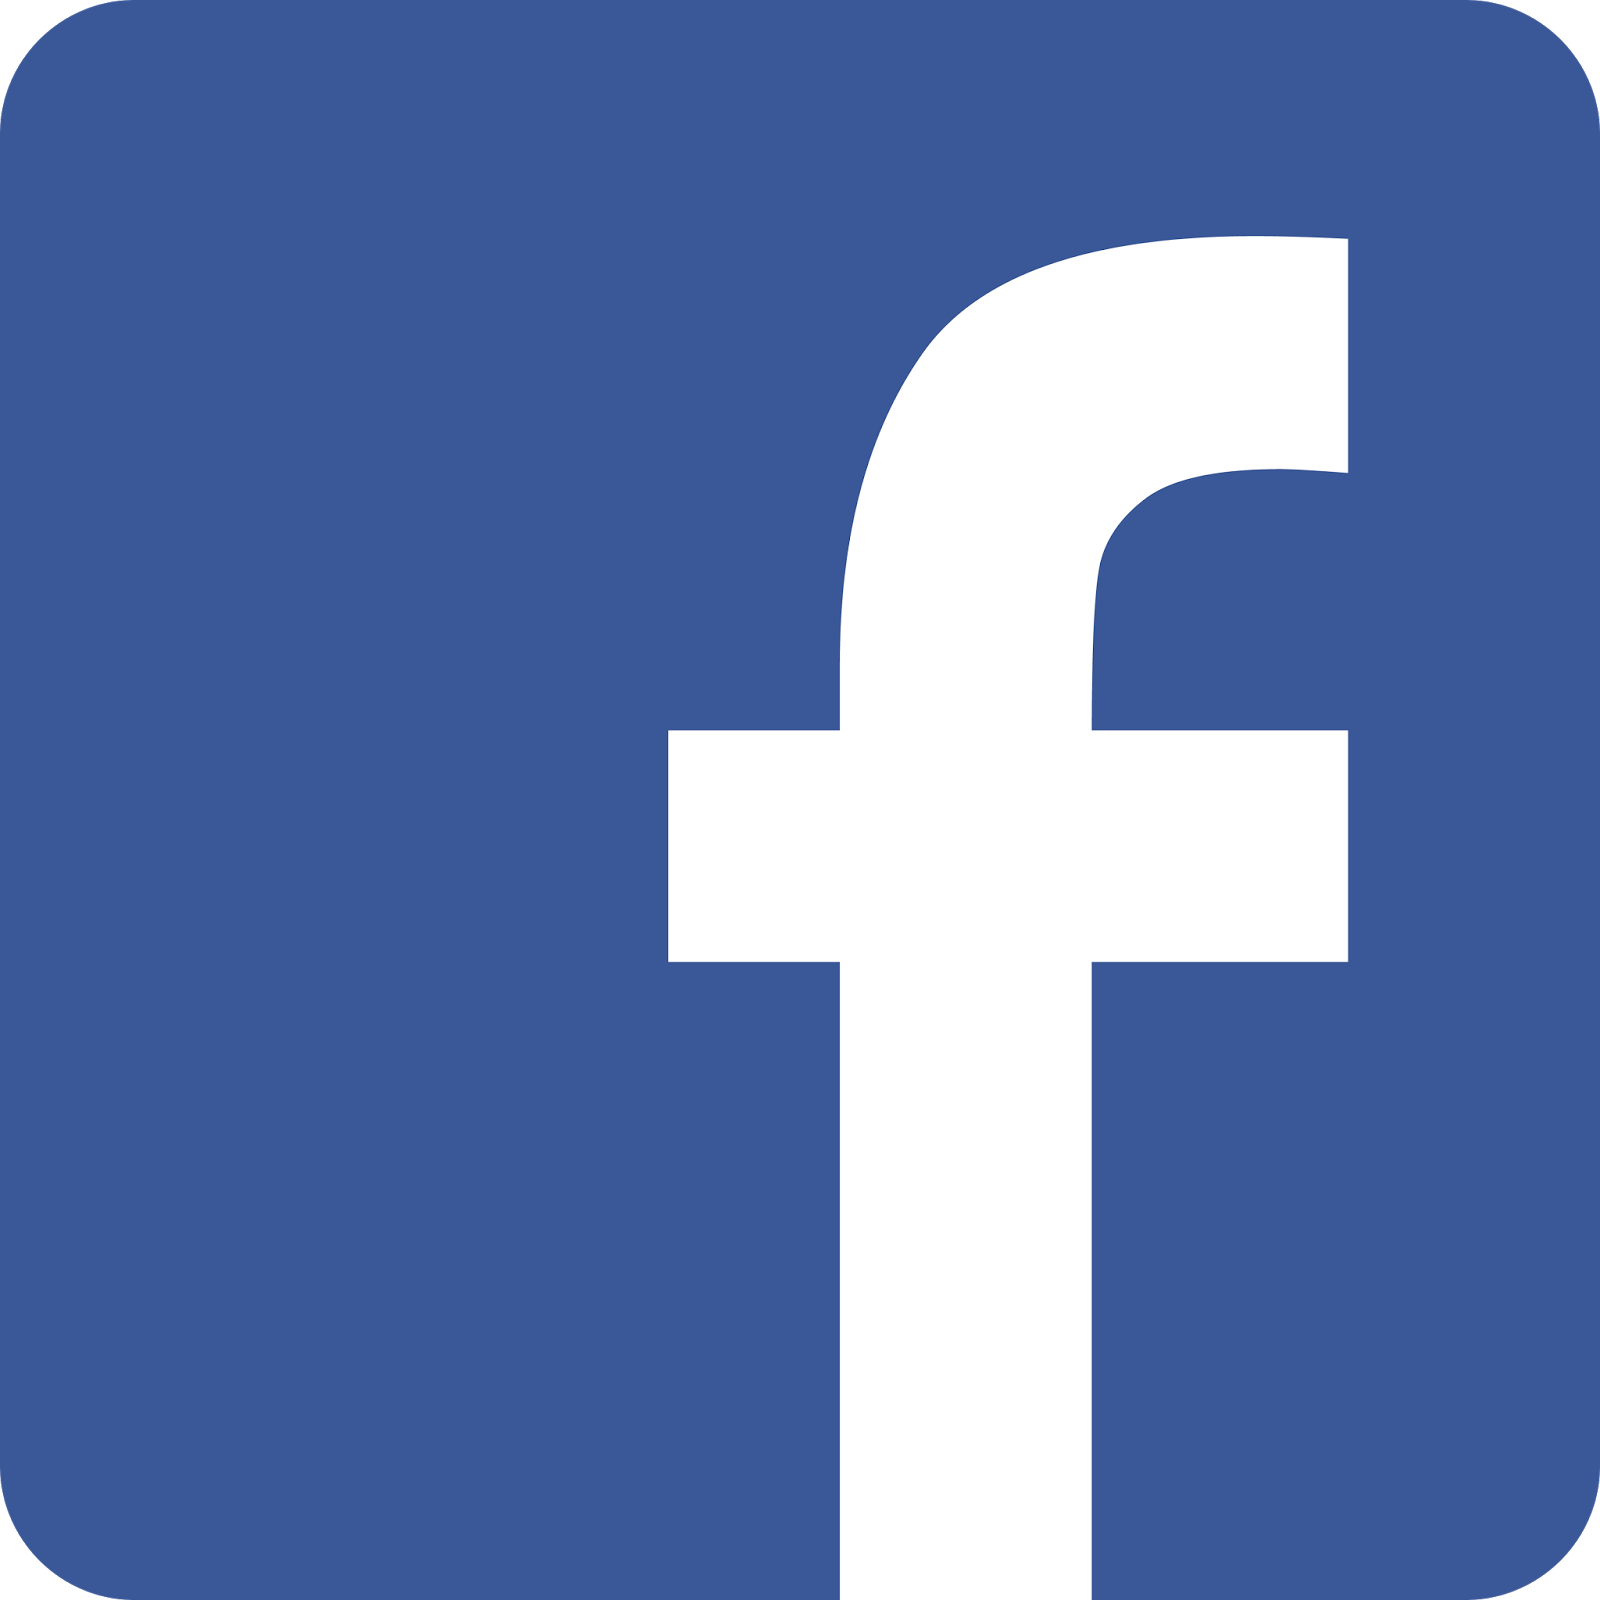 facebook logo png transparent background.png